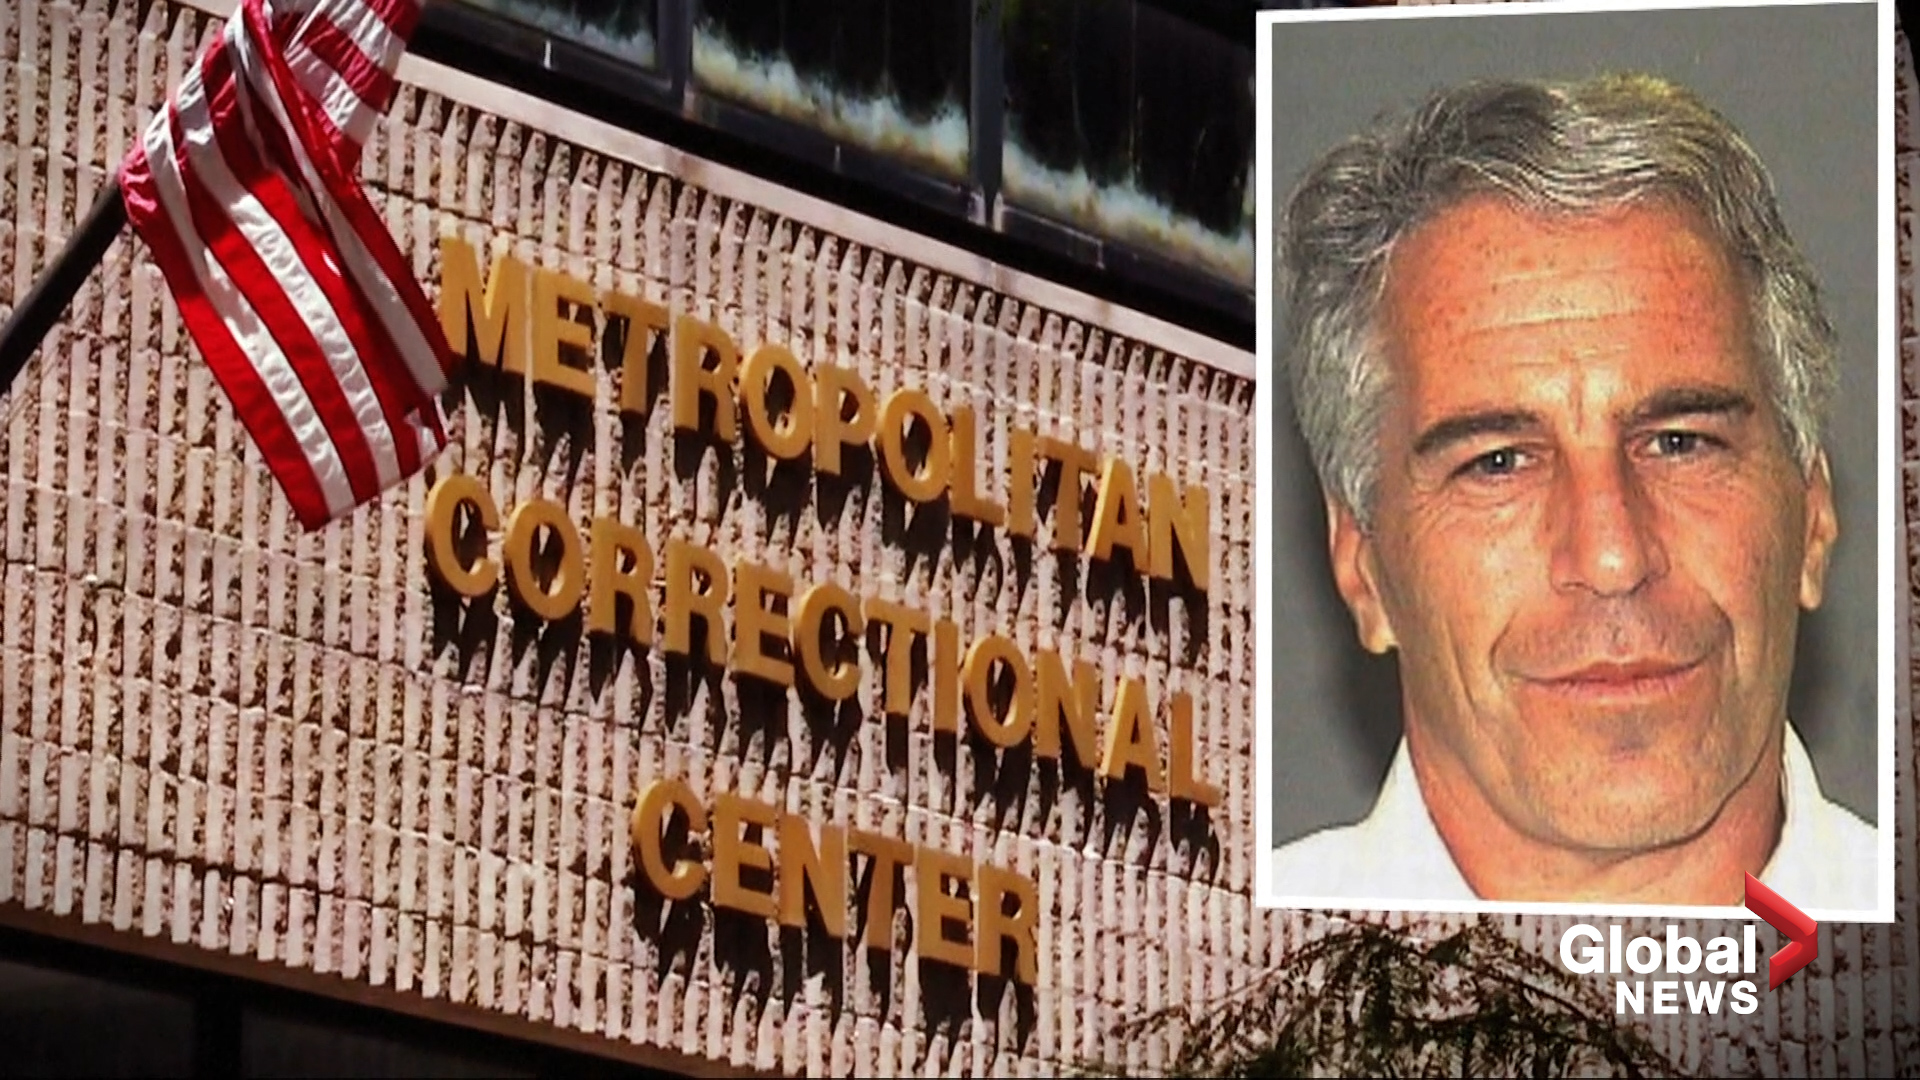 Officers from Prison Where Jeffrey Epstein Died, Subpoenaed